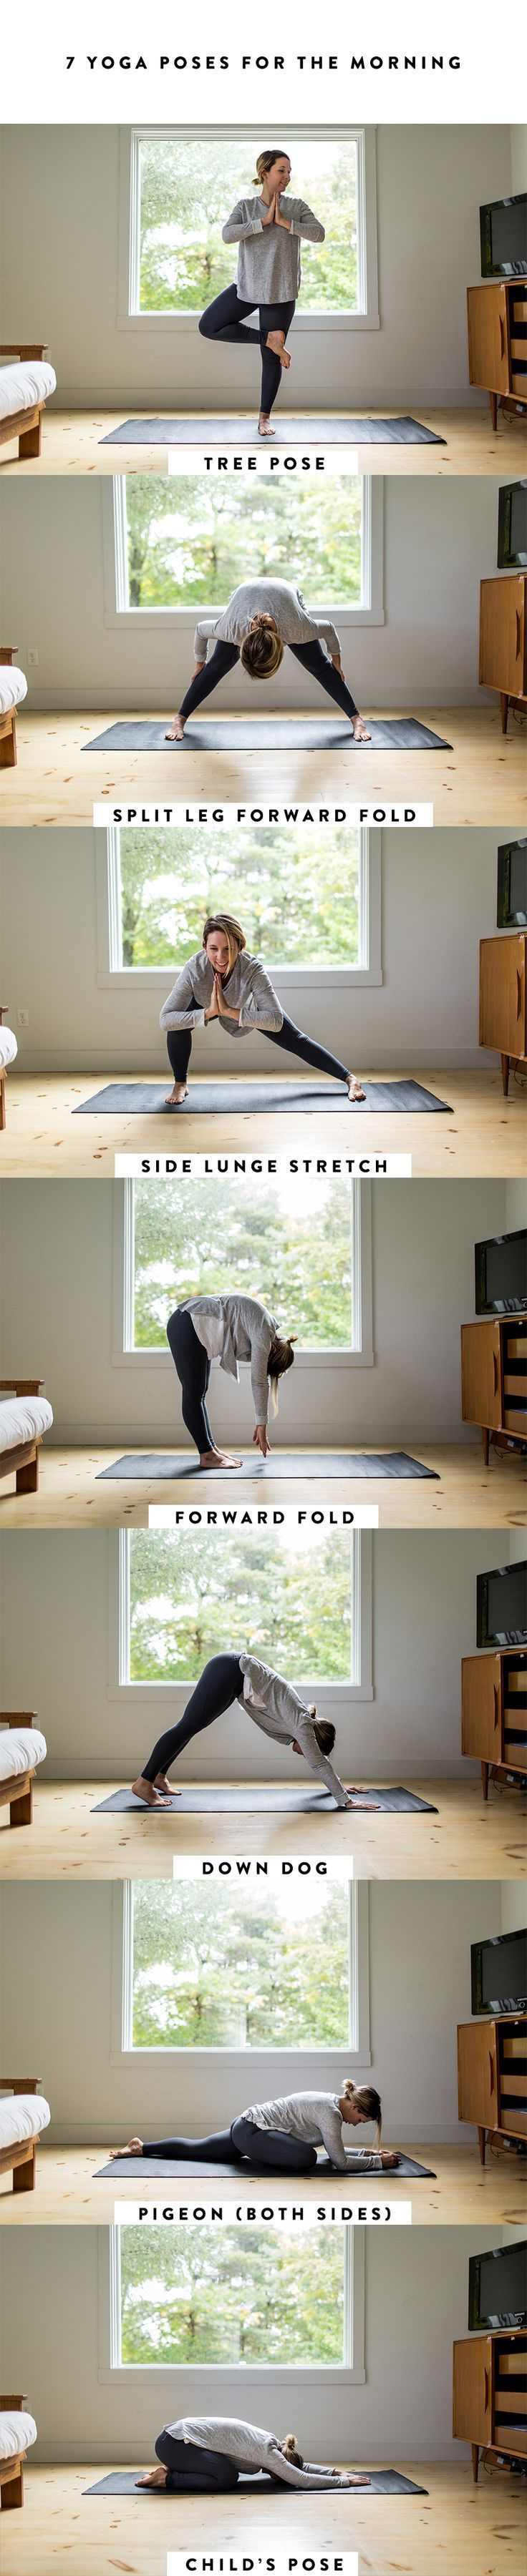 414 best Yoga images on Pinterest